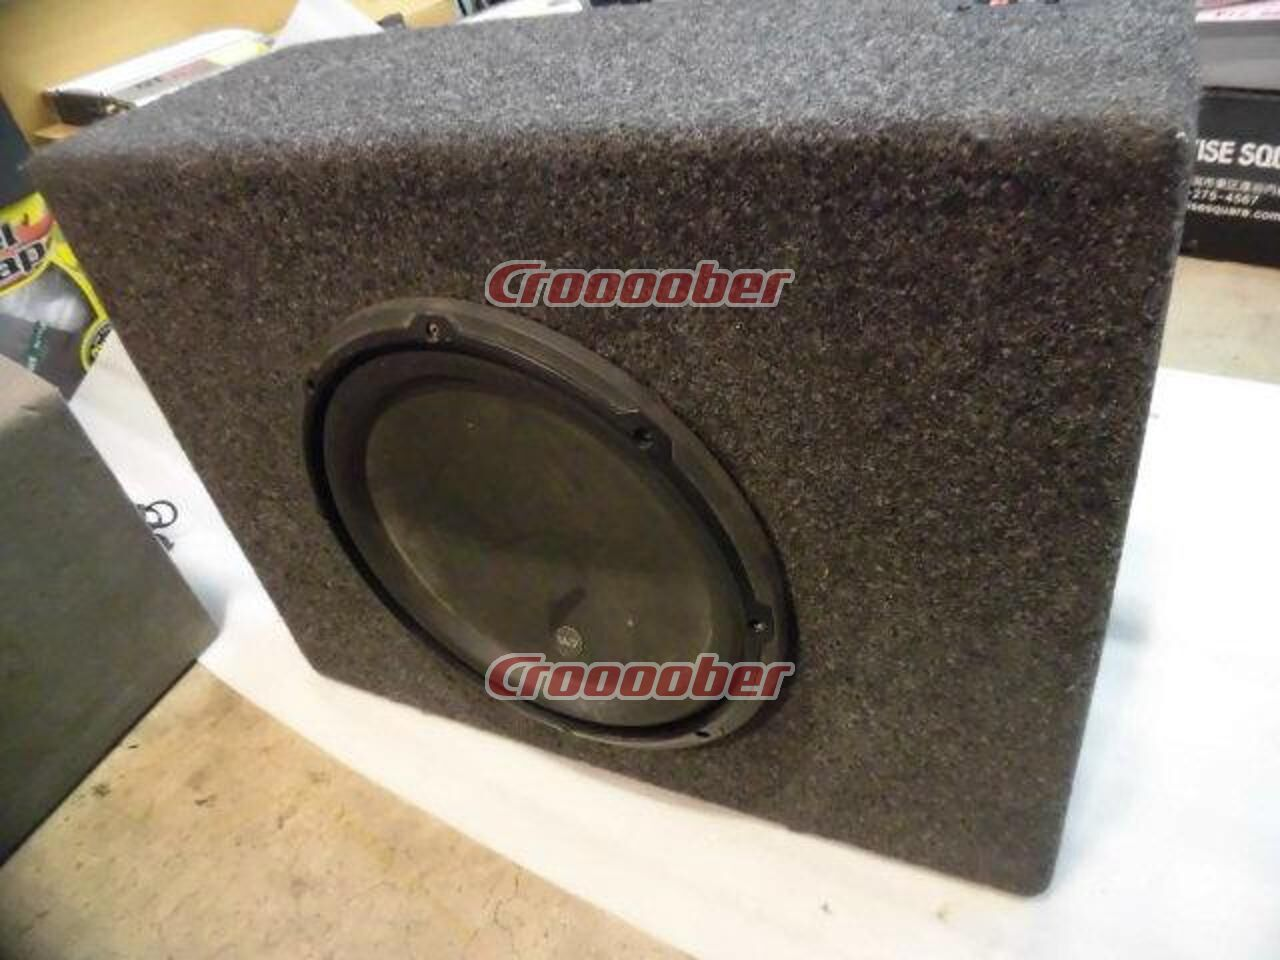 Jl audio w3 with 30 cm subwoofer box sub woofer with box jl audio w3 with 30 cm subwoofer box publicscrutiny Choice Image